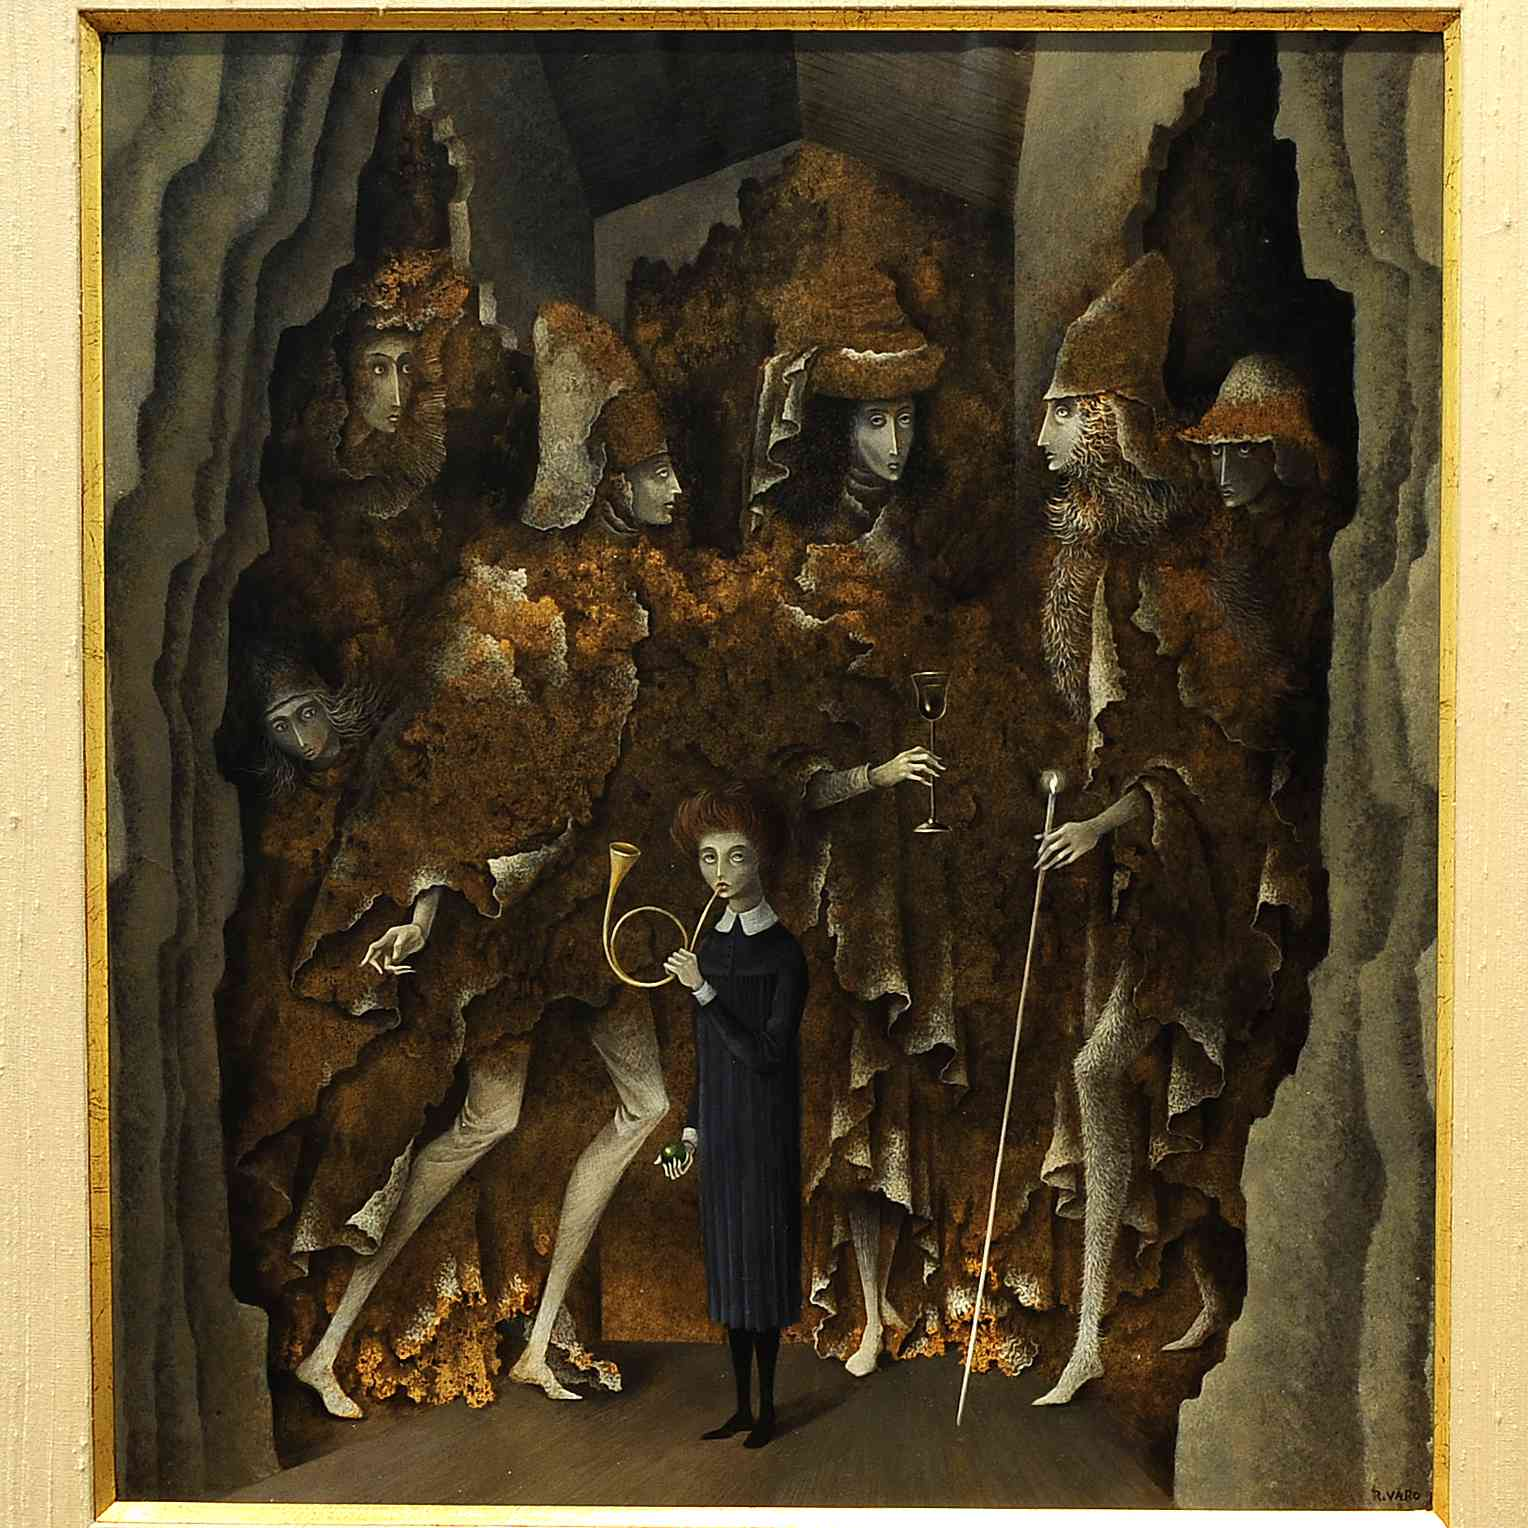 A woman stands in a black collared dress blowing on a horn as six figures emerge from caves behind her